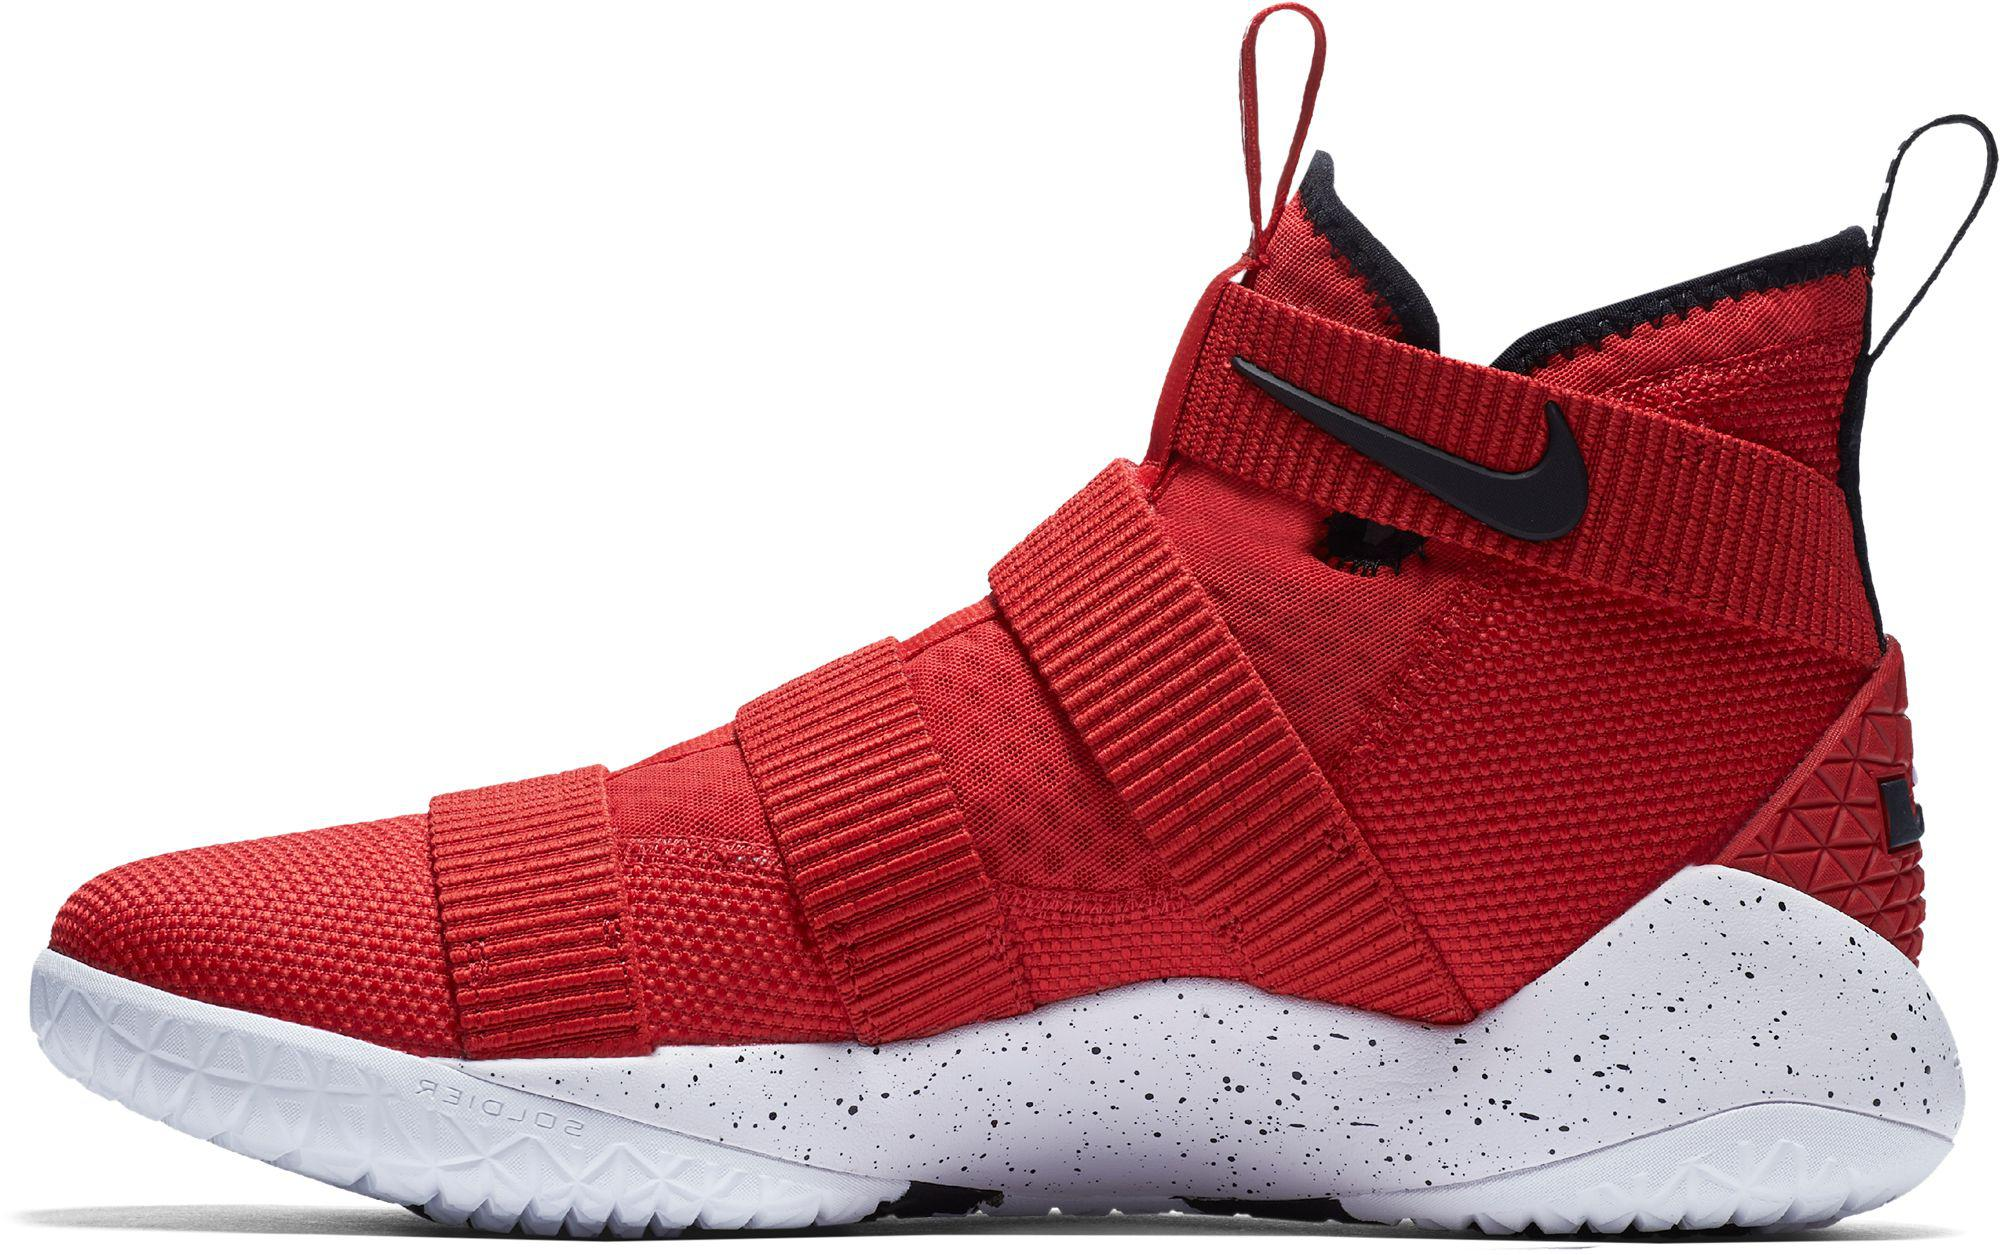 save off 6f75a cae09 Nike - Red Zoom Lebron Soldier Xi Basketball Shoes for Men - Lyst